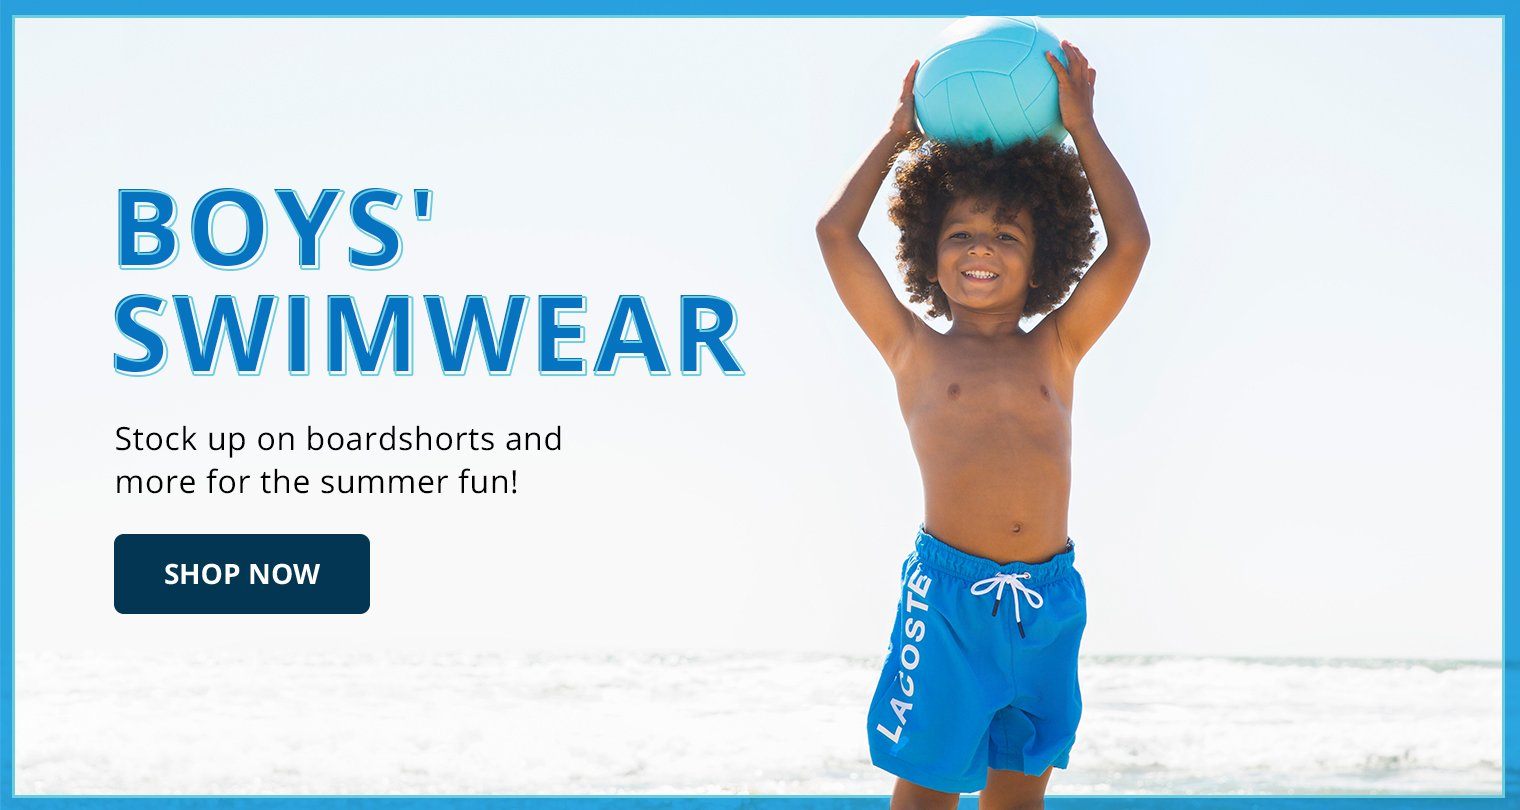 Boys Swimwear.Stock up on boardshorts and more for summer fun. Shop now.